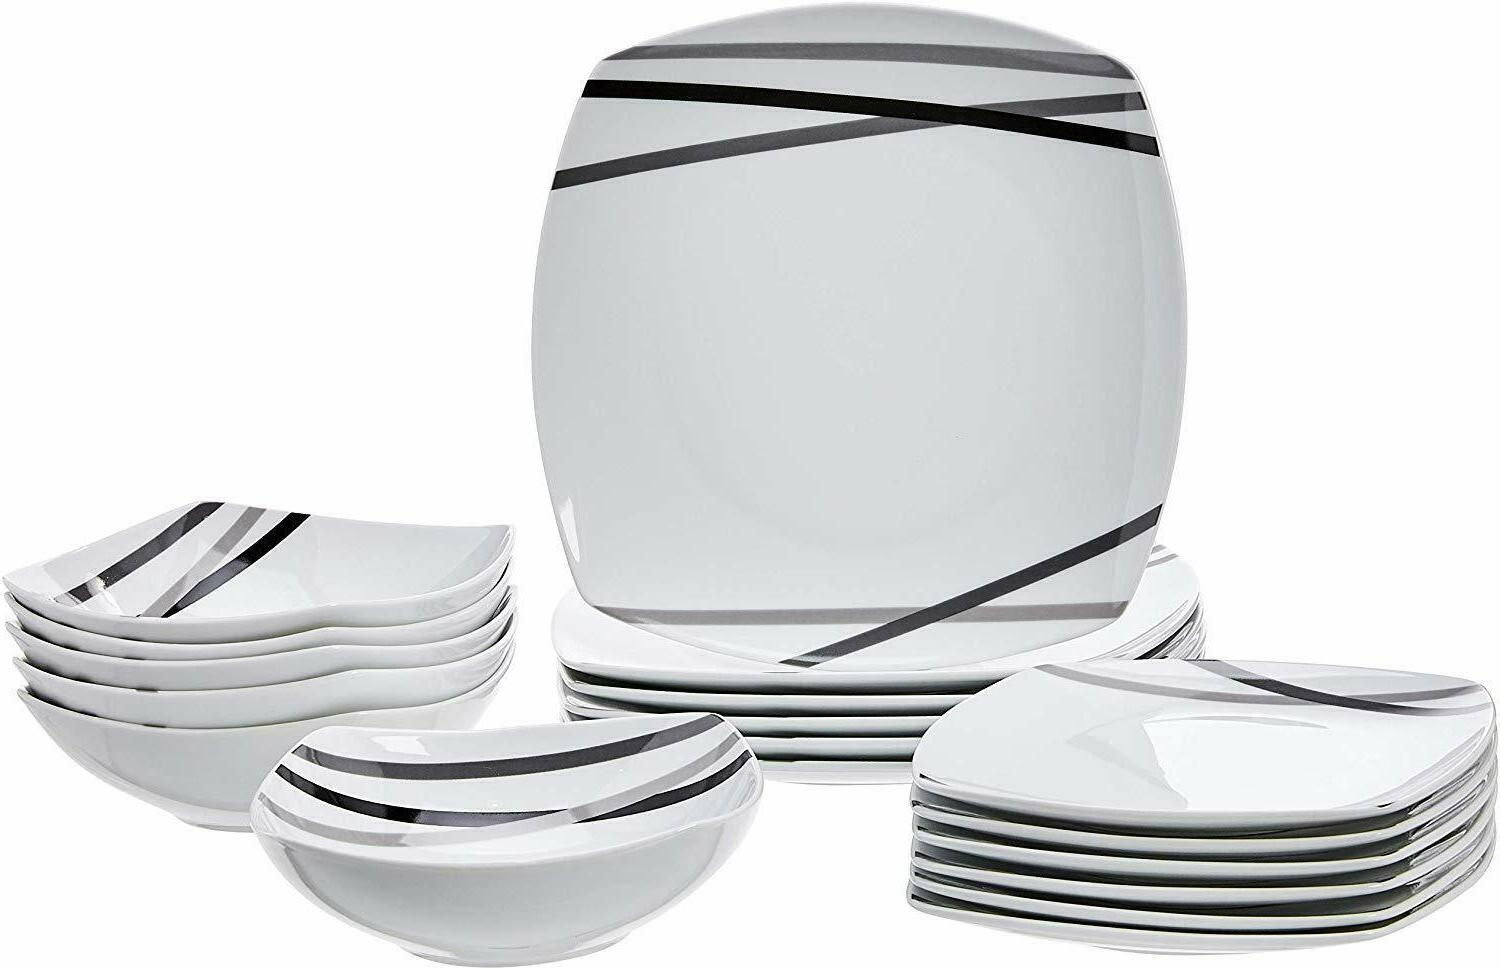 Dinnerware Square Set Dinner Plates Dishes Bowls Home Kitche